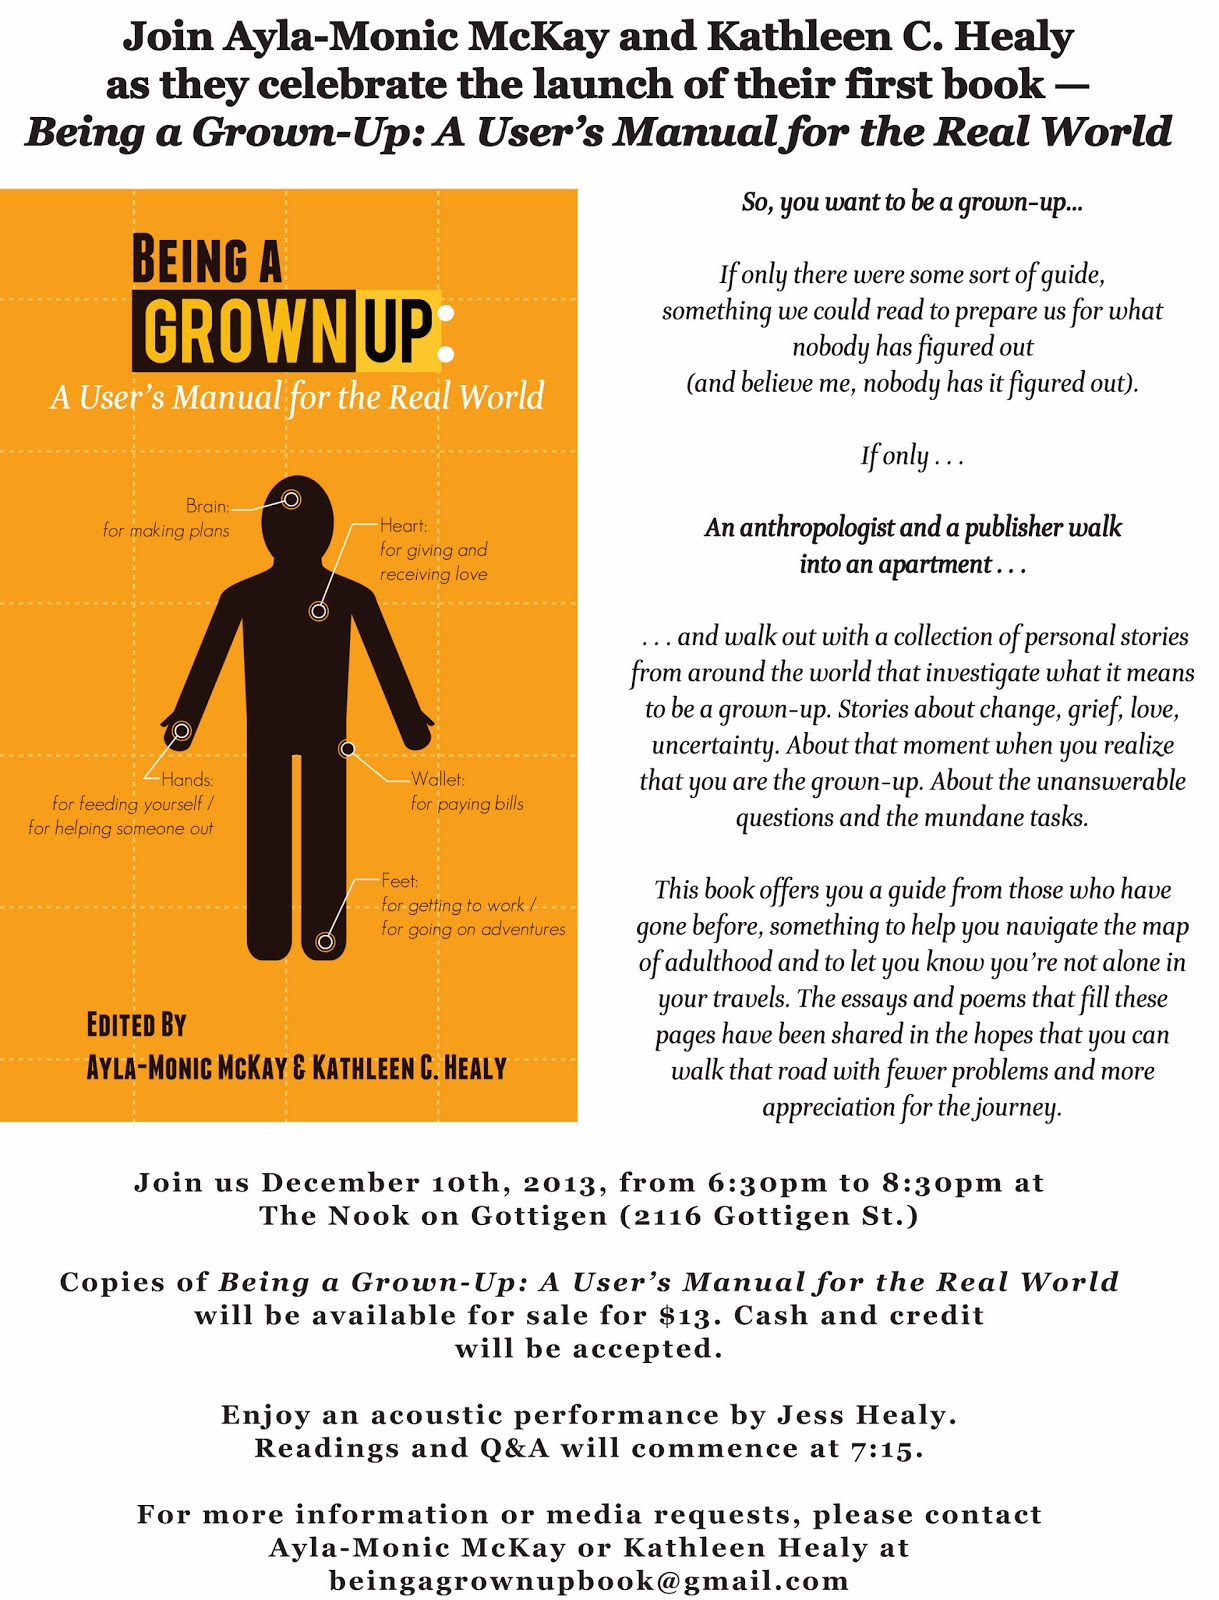 being a grown up a user s manual for the real world sunday 8 2013